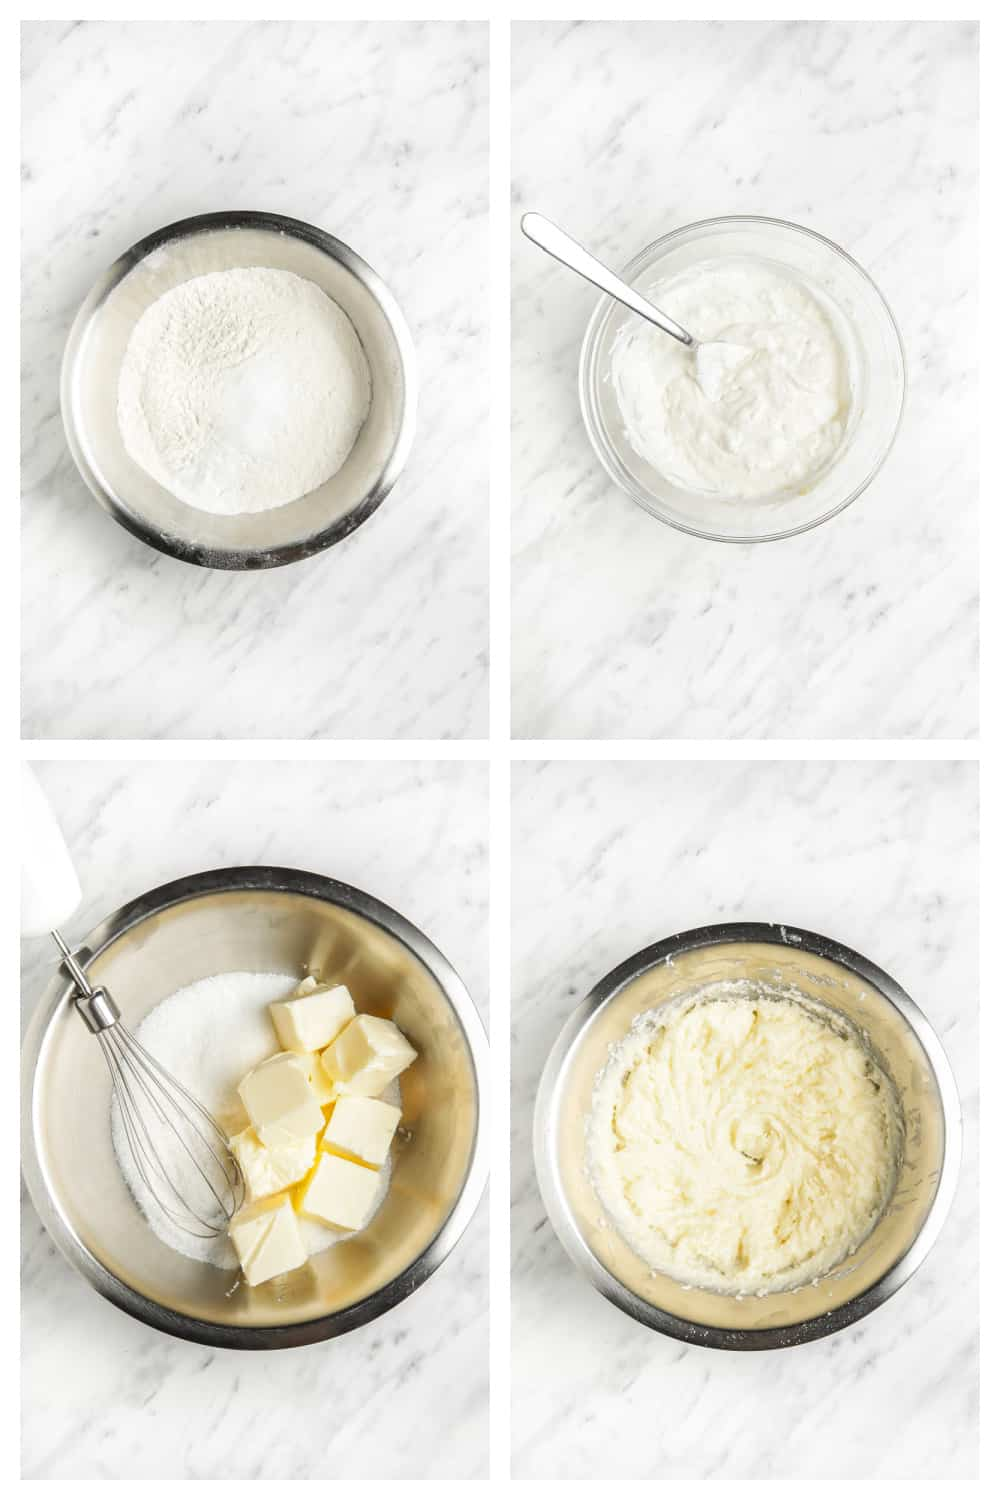 step by step photos of making lemon poppy seed bread